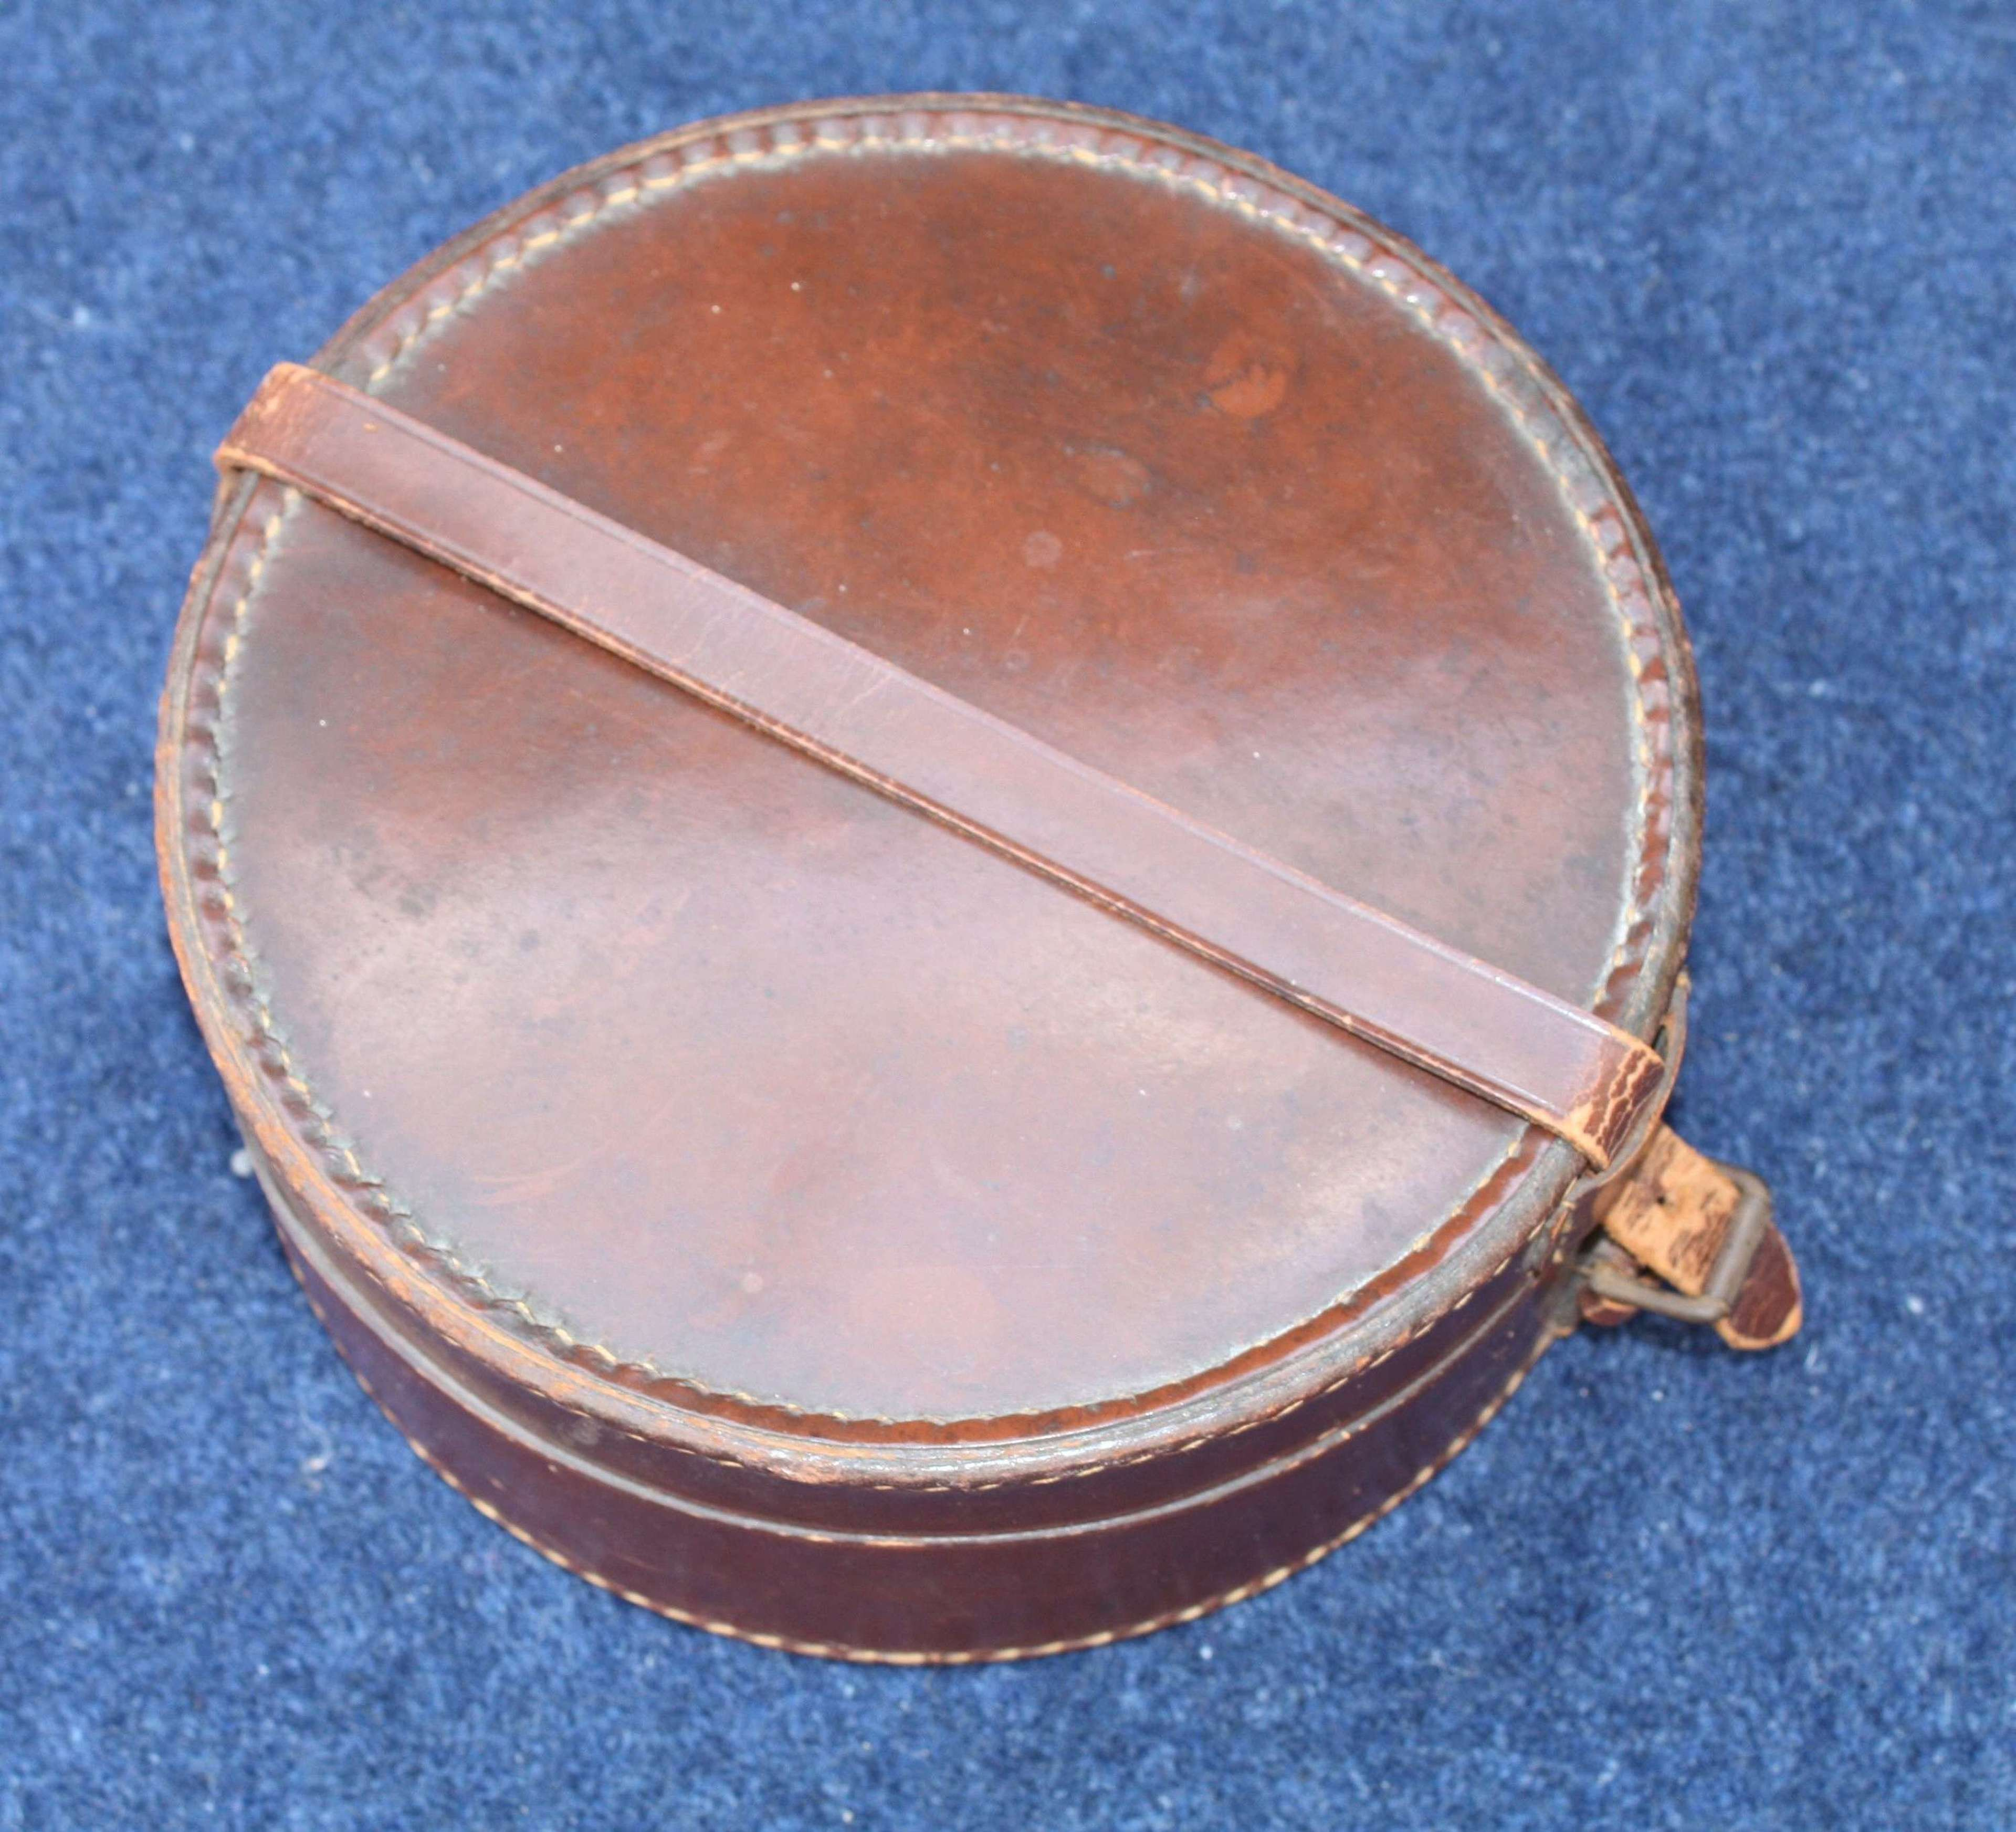 WW1 British Army Officers Round Leather Box for canteen or collars